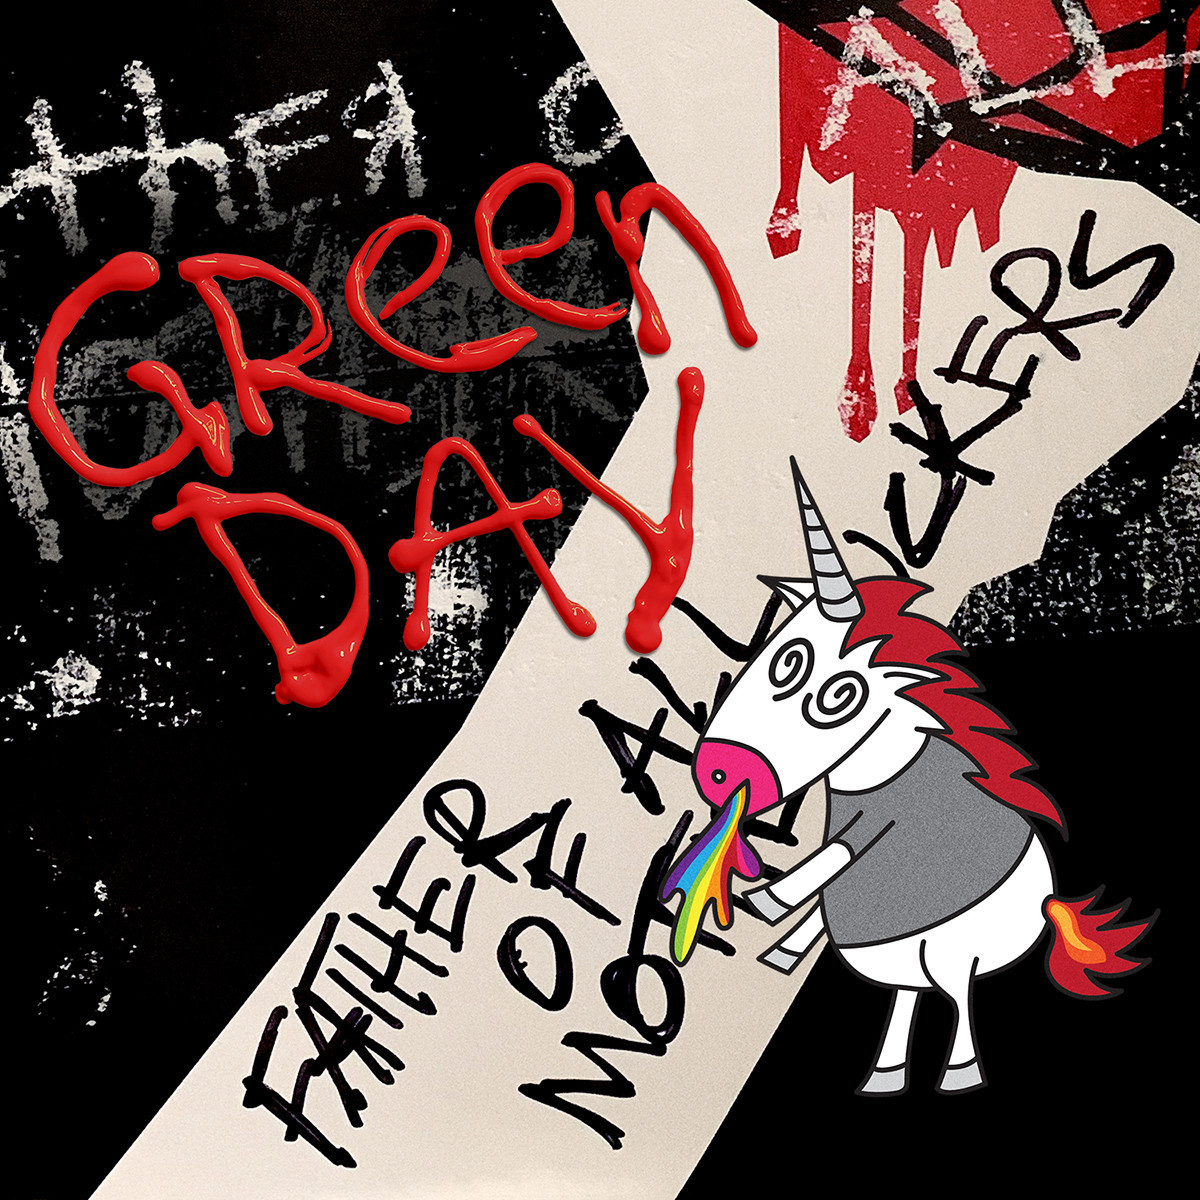 Green Day, Fall Out Boy, Weezer to tour United Kingdom, release new albums